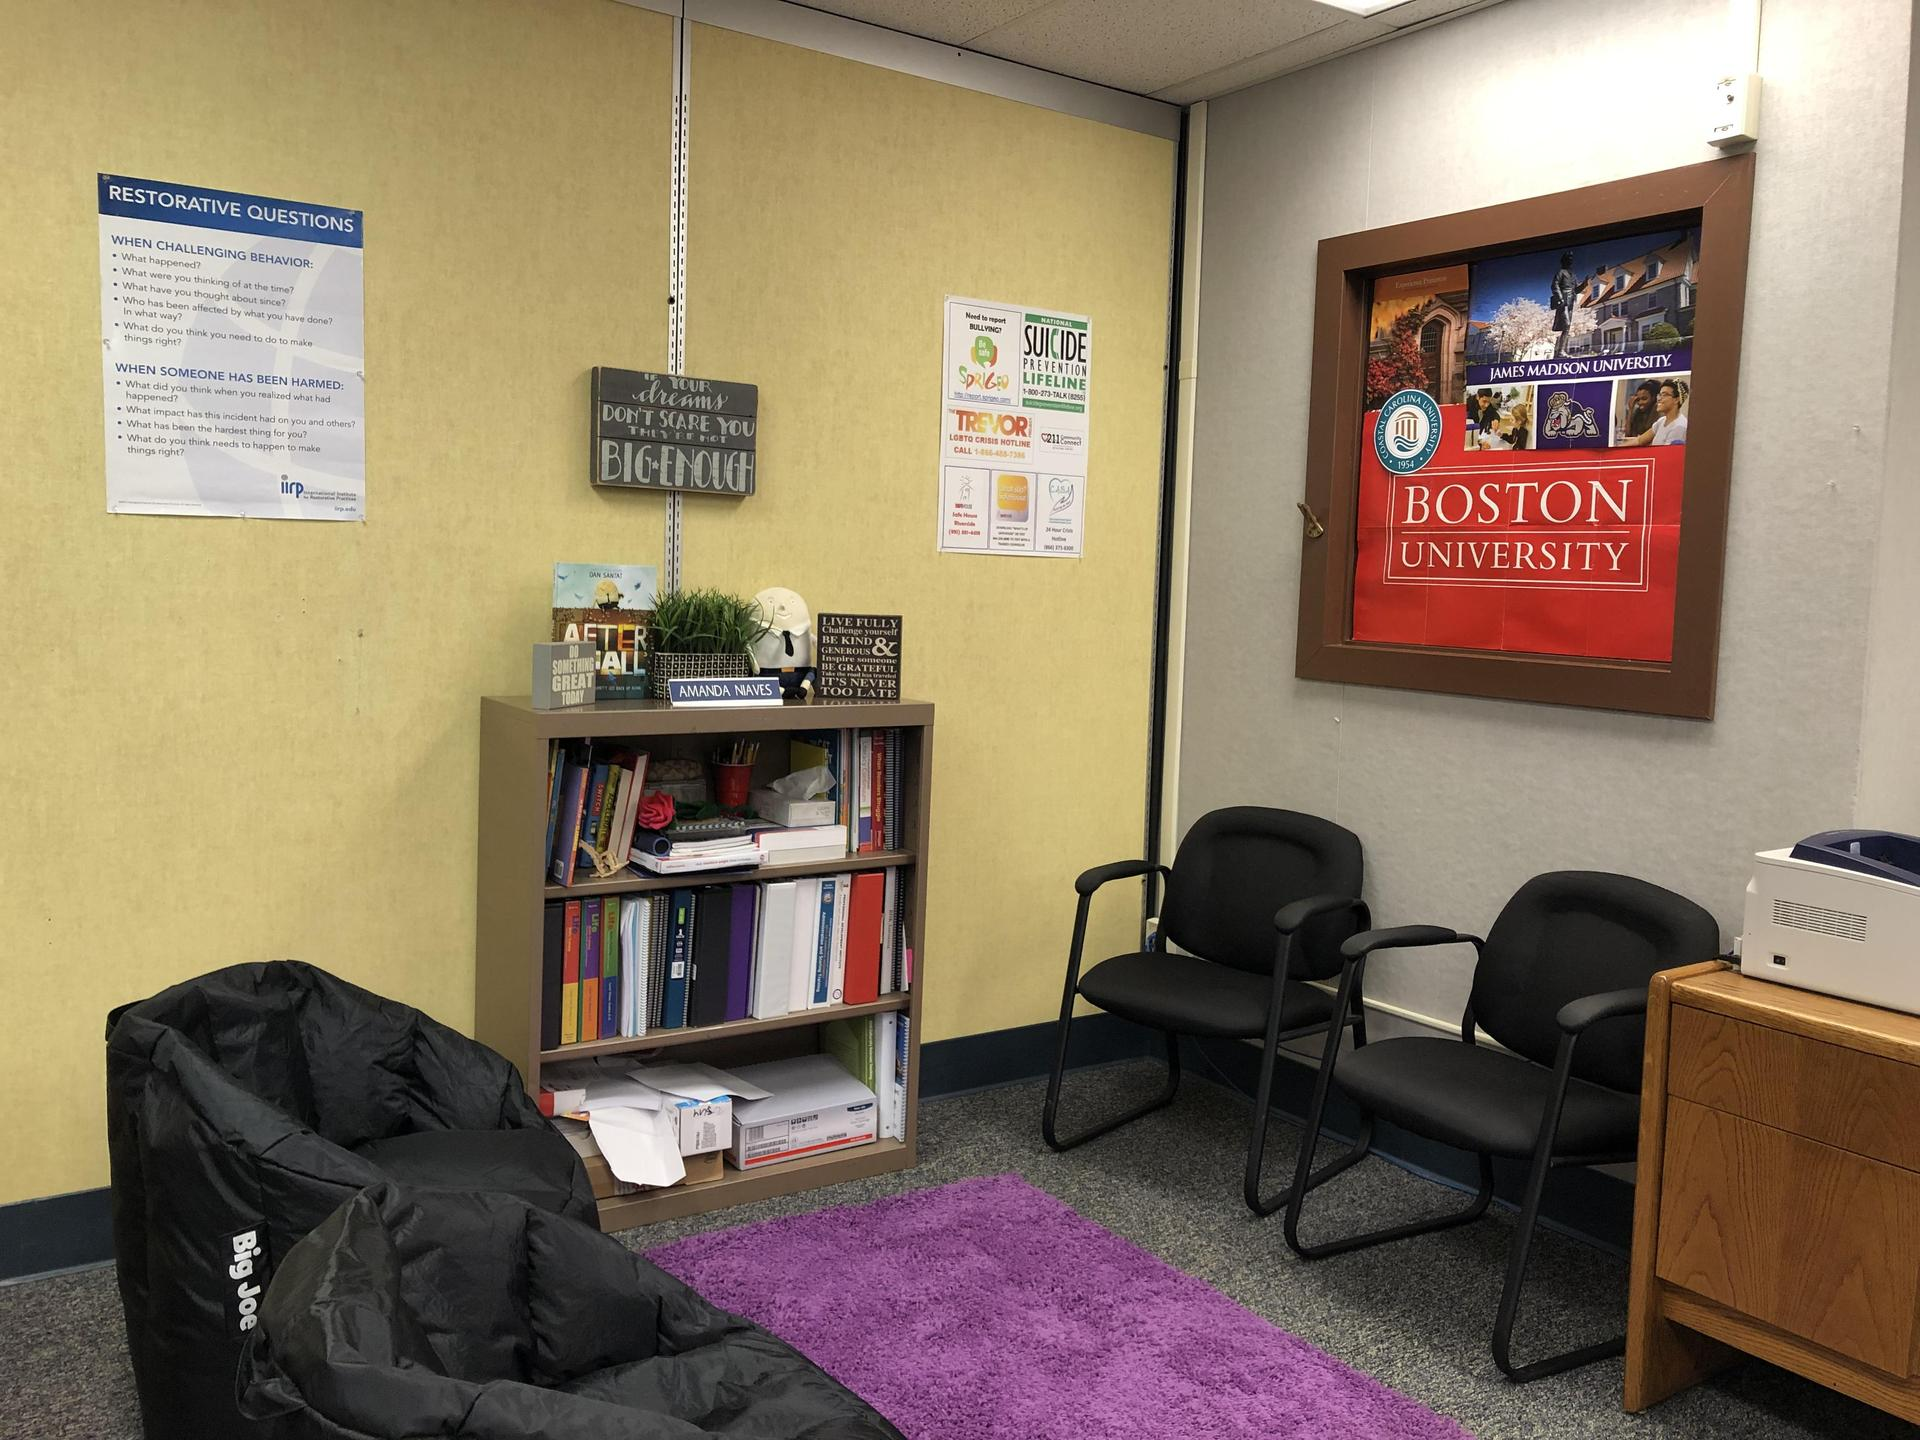 This section of the counseling center is an excellent place to practice effective communication and allow student to participate in Restorative Circles.